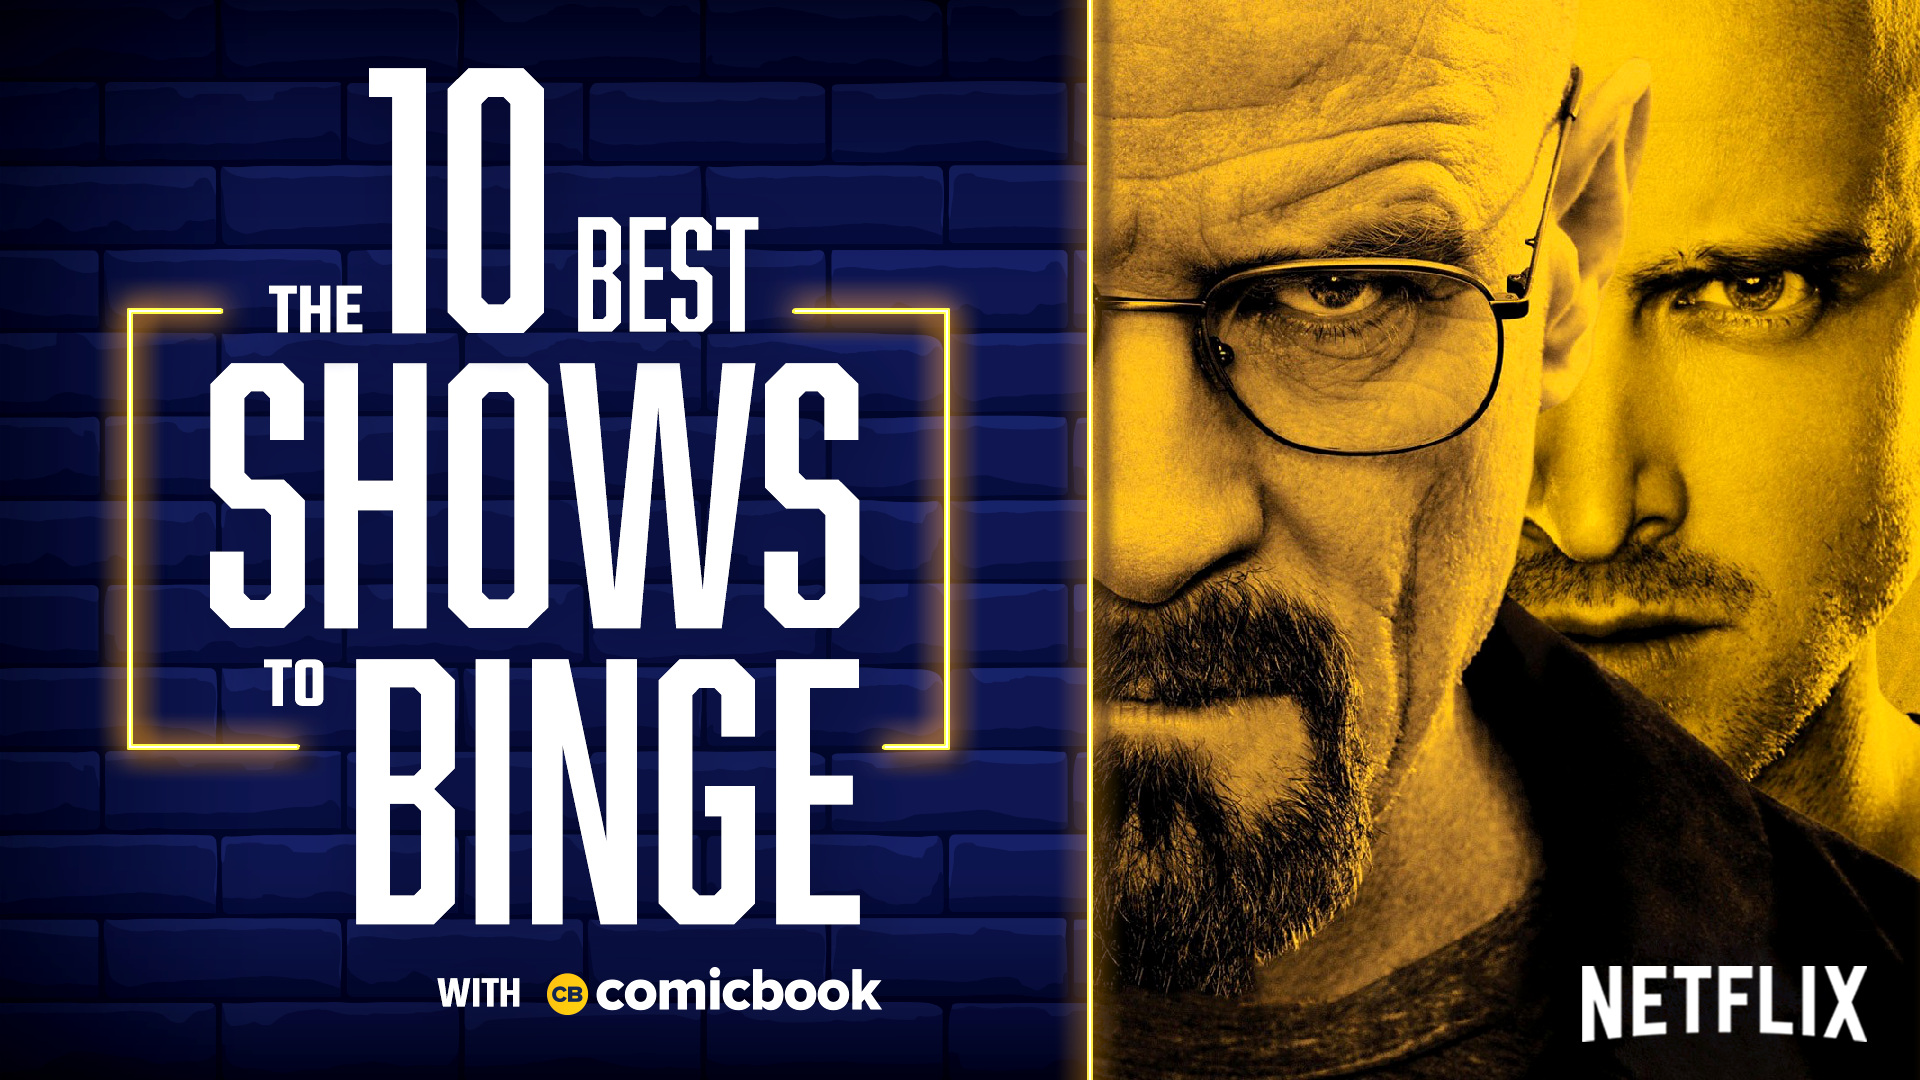 10 Best Shows to Binge on Netflix